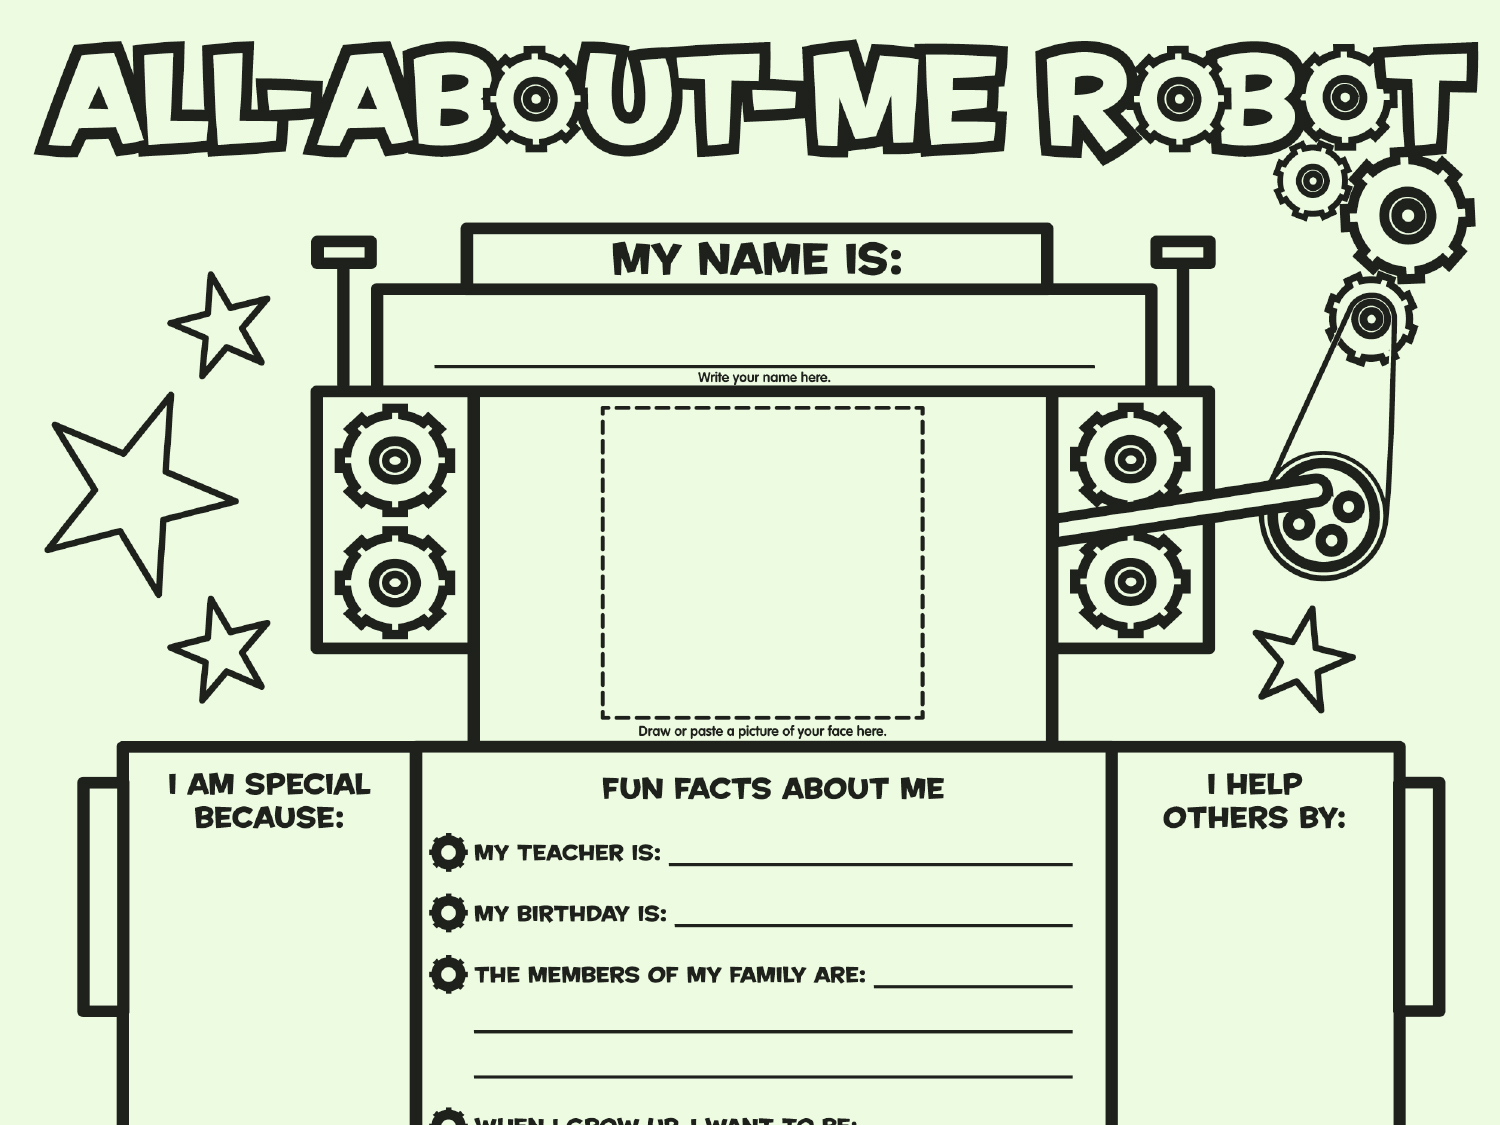 photograph relating to All About Me Printable Worksheets called All More than Me Robotic: Fill-inside Poster Worksheets Printables